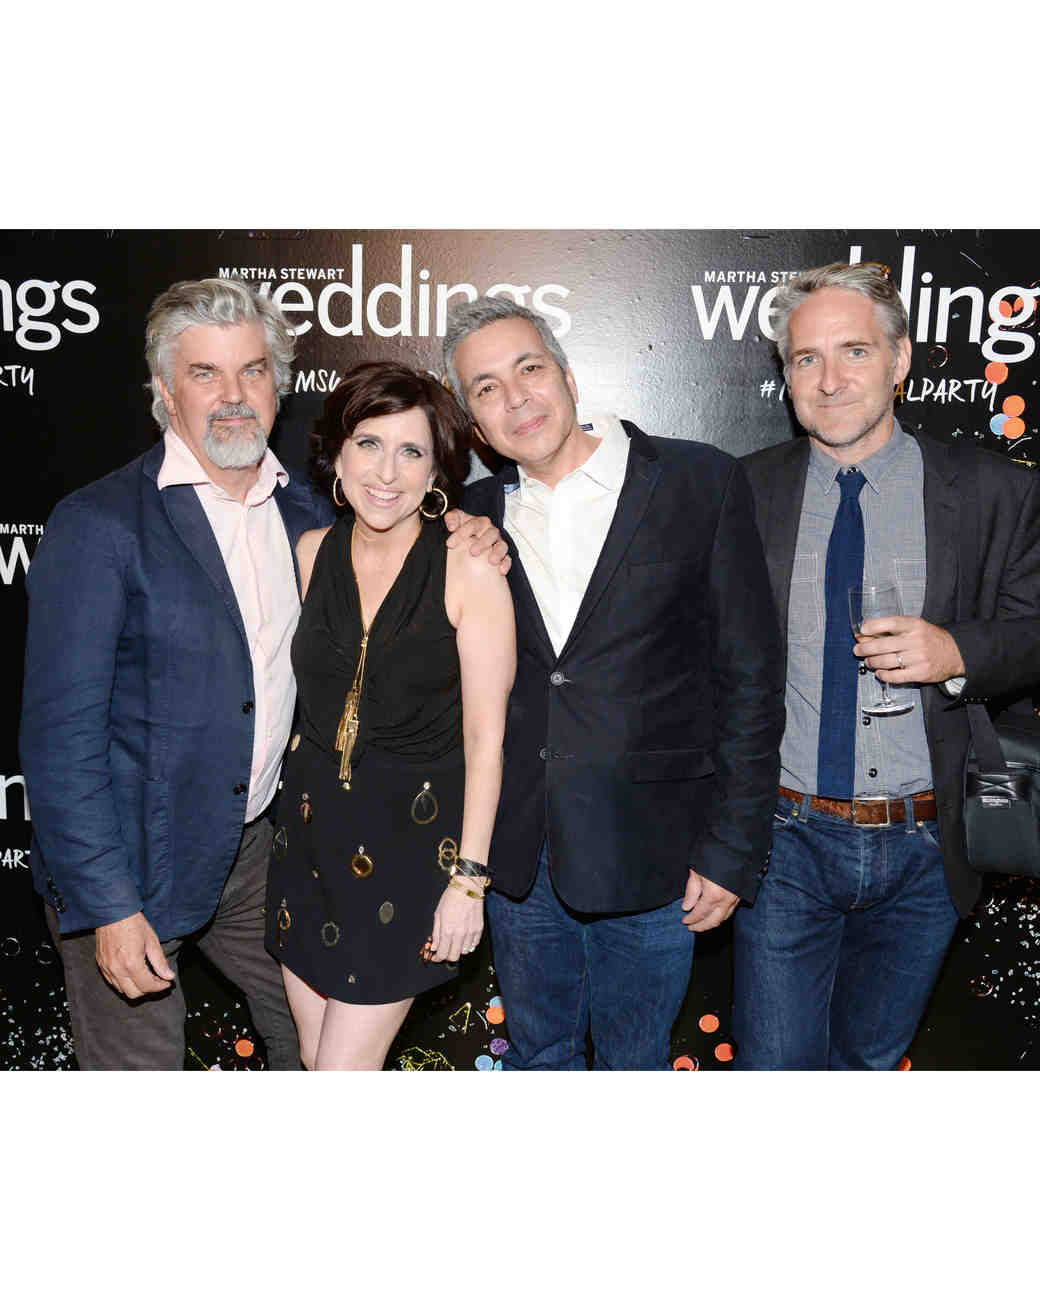 2015-msw-party-guests-john-dolan-darcy-philipe-chen-holger-thoss-1015.jpg